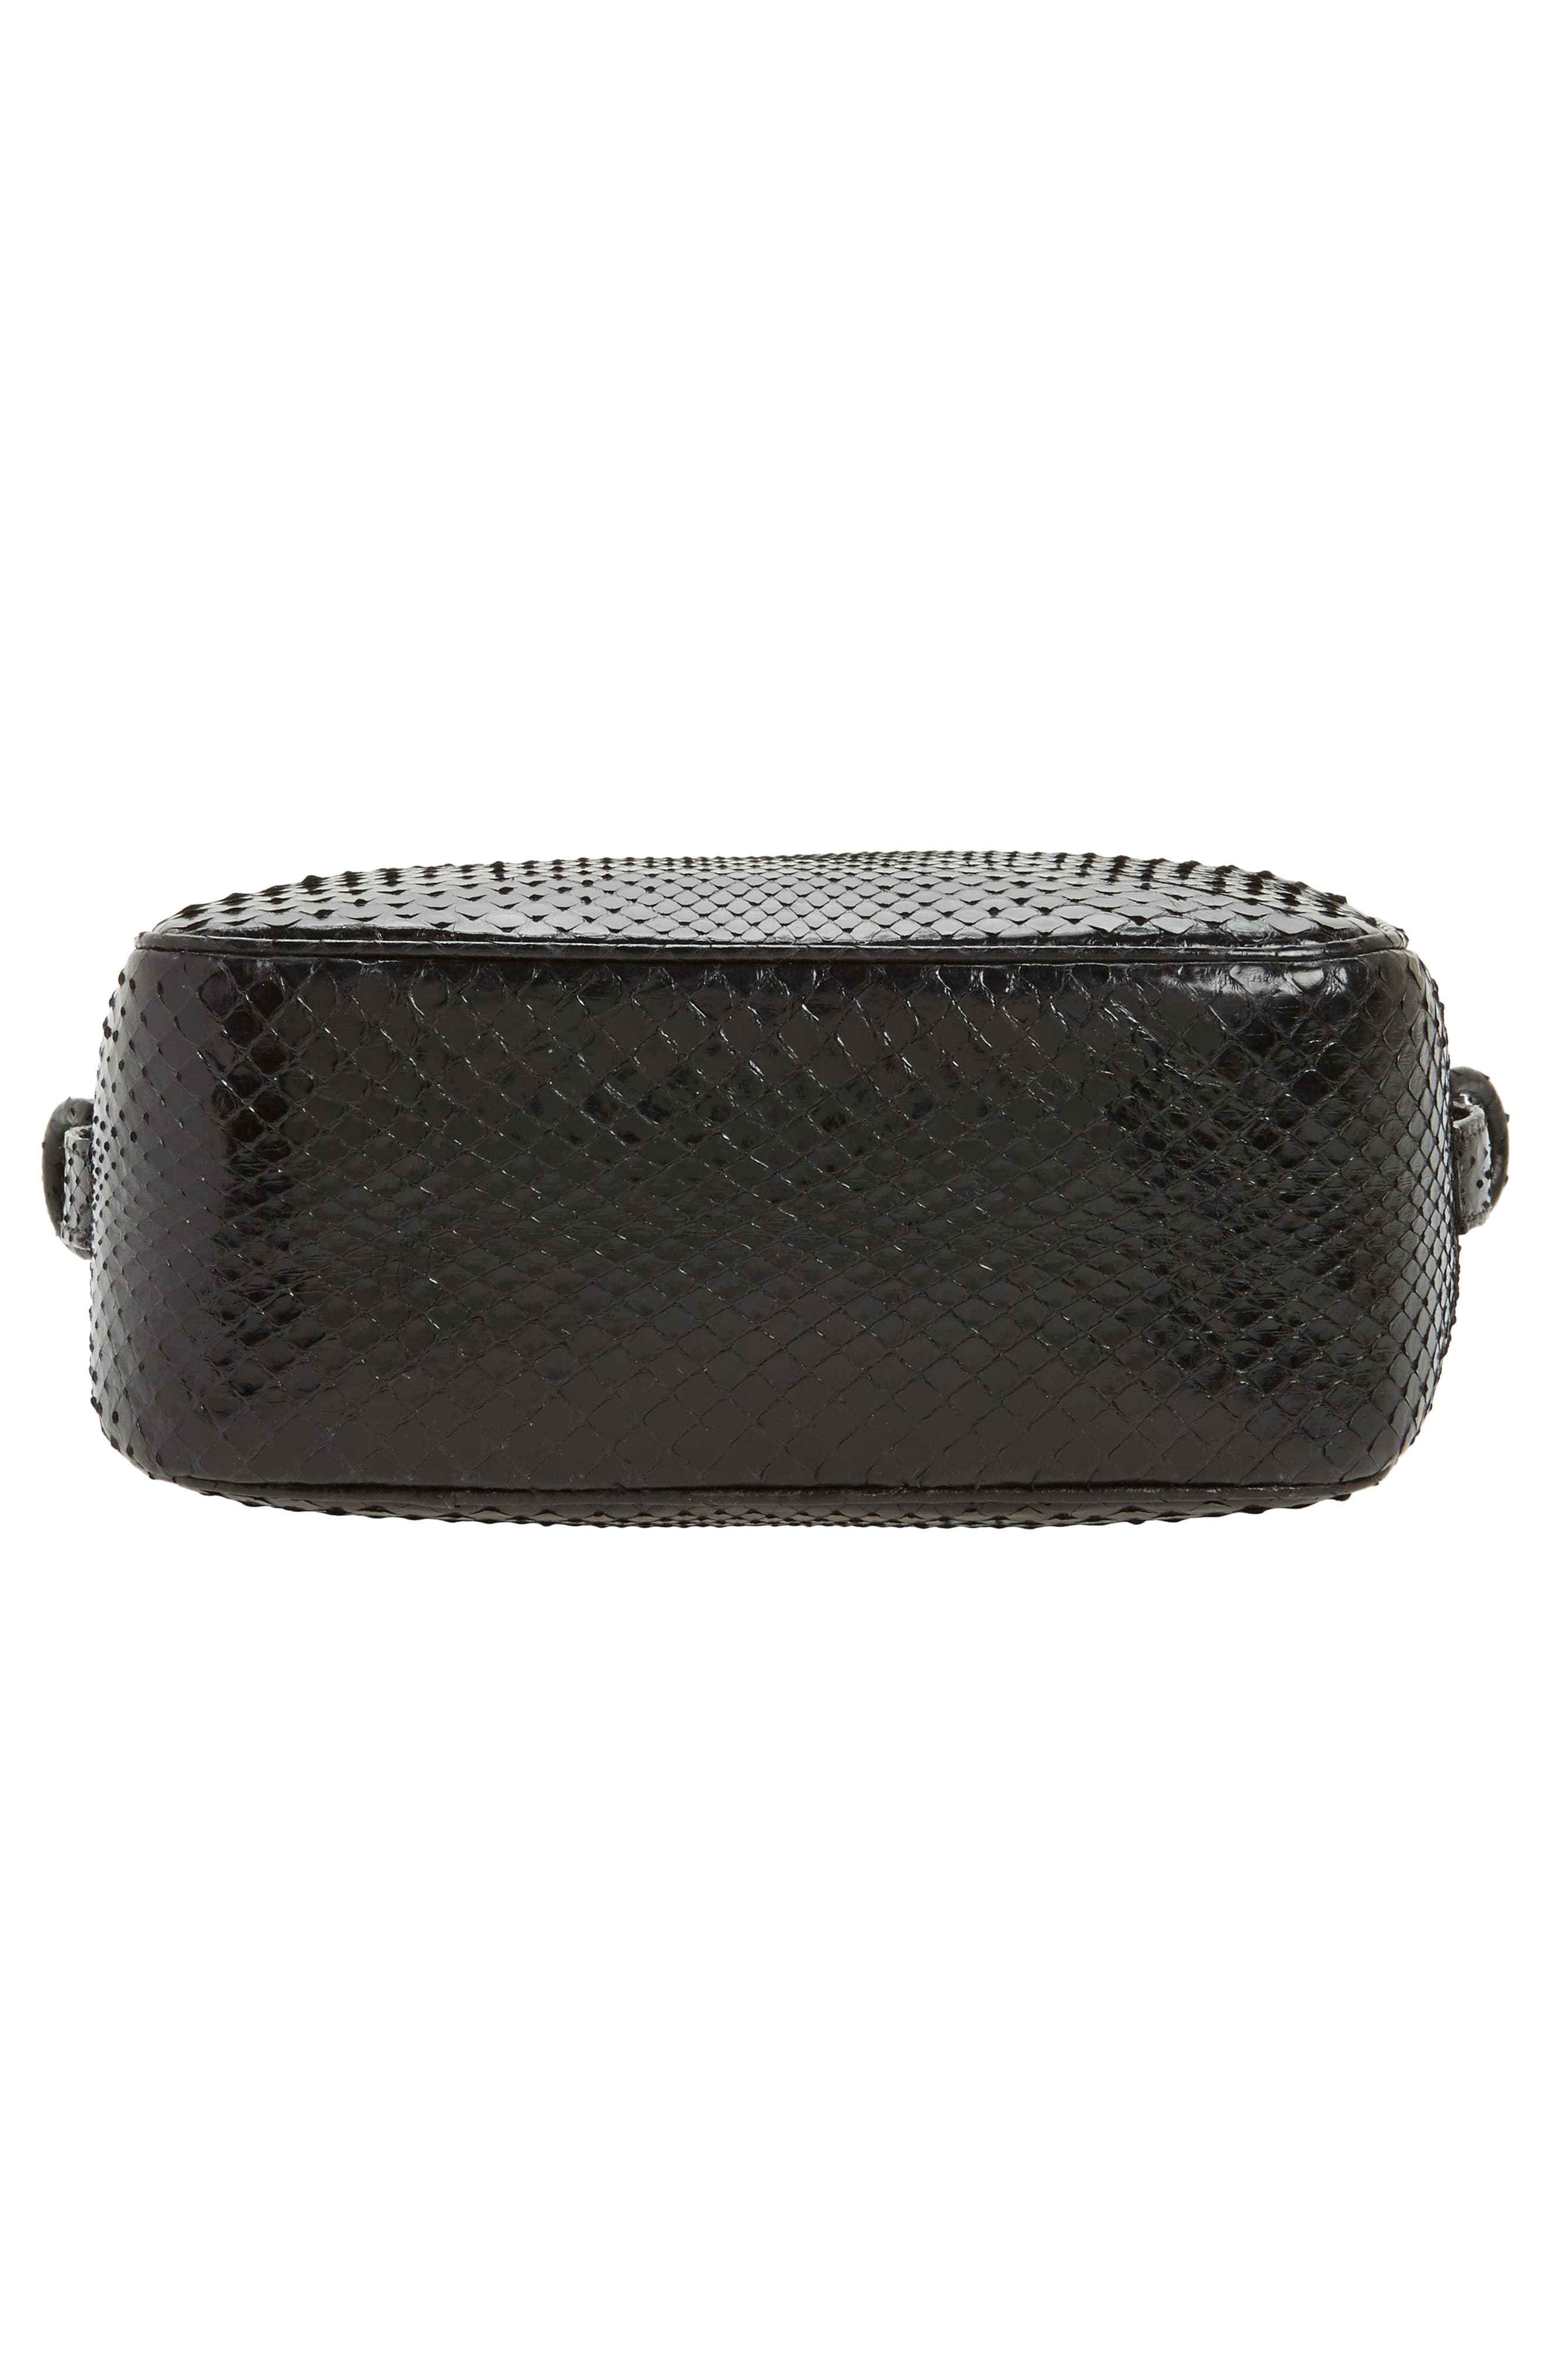 Genuine Python Shoulder Bag,                             Alternate thumbnail 6, color,                             001